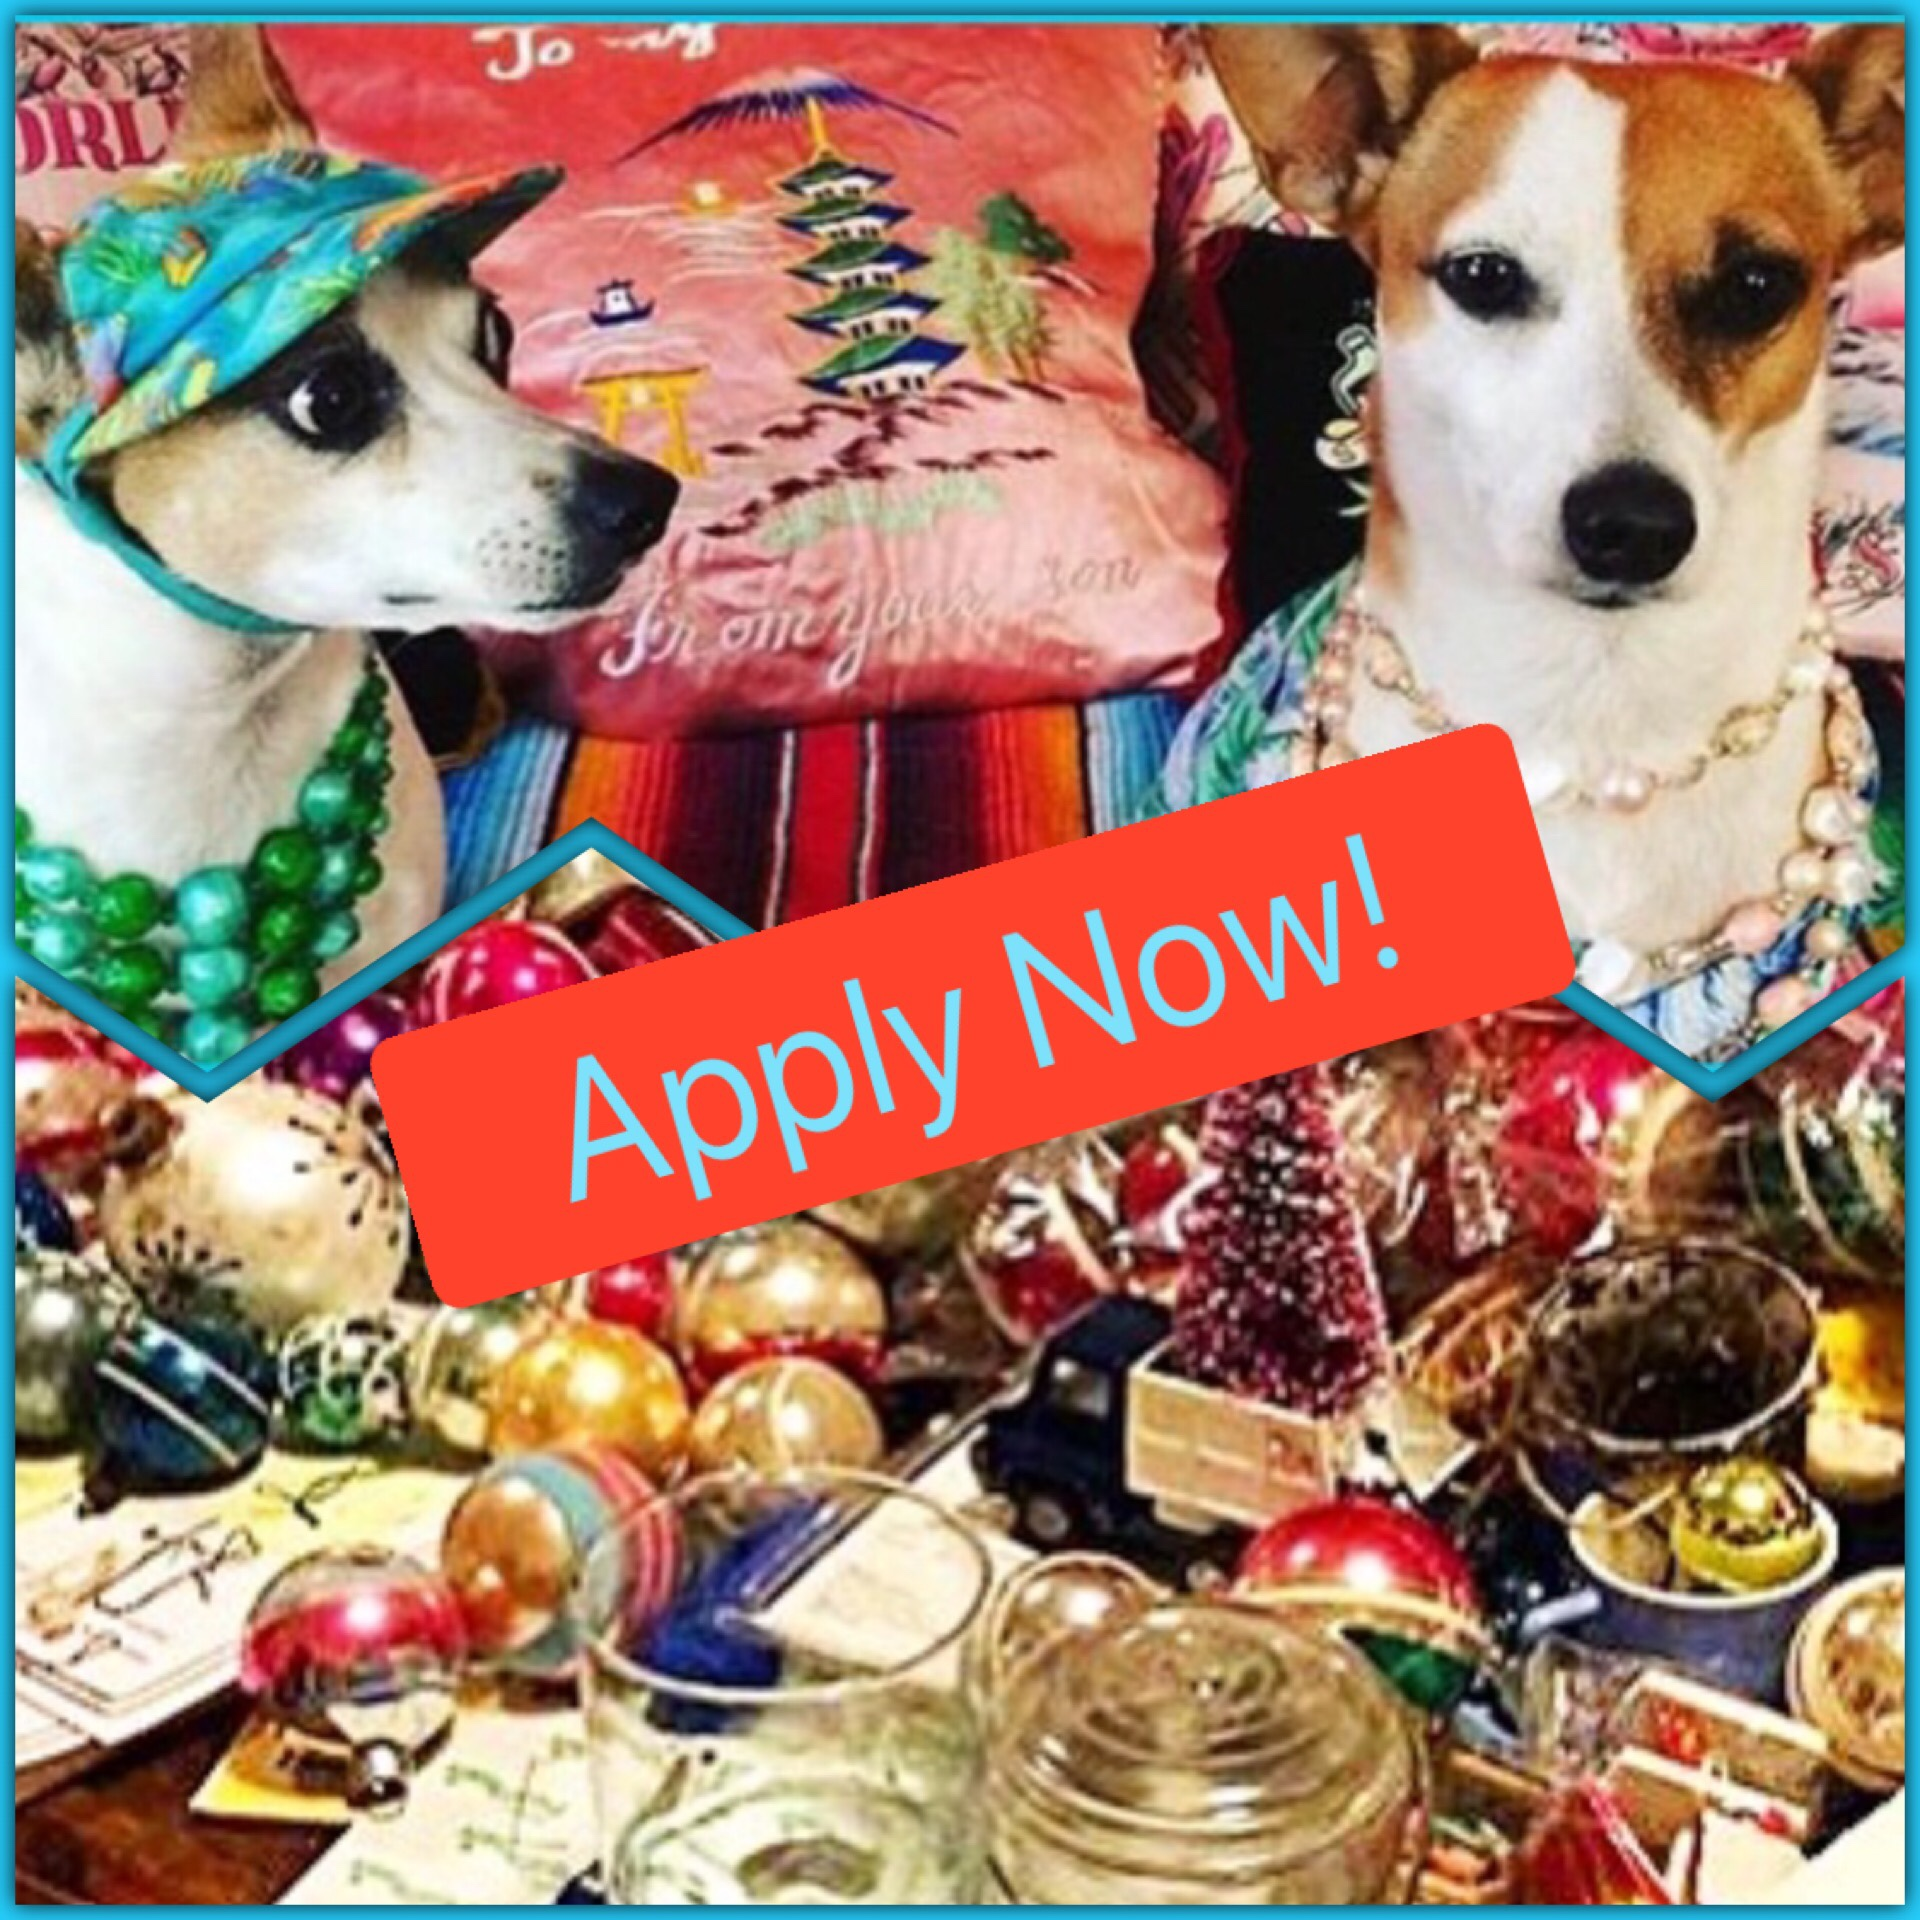 Vendor Application - Want to be a vendor at the 2019 Craft and Kitsch Market? Apply today! Application deadline is August 7, 2019.